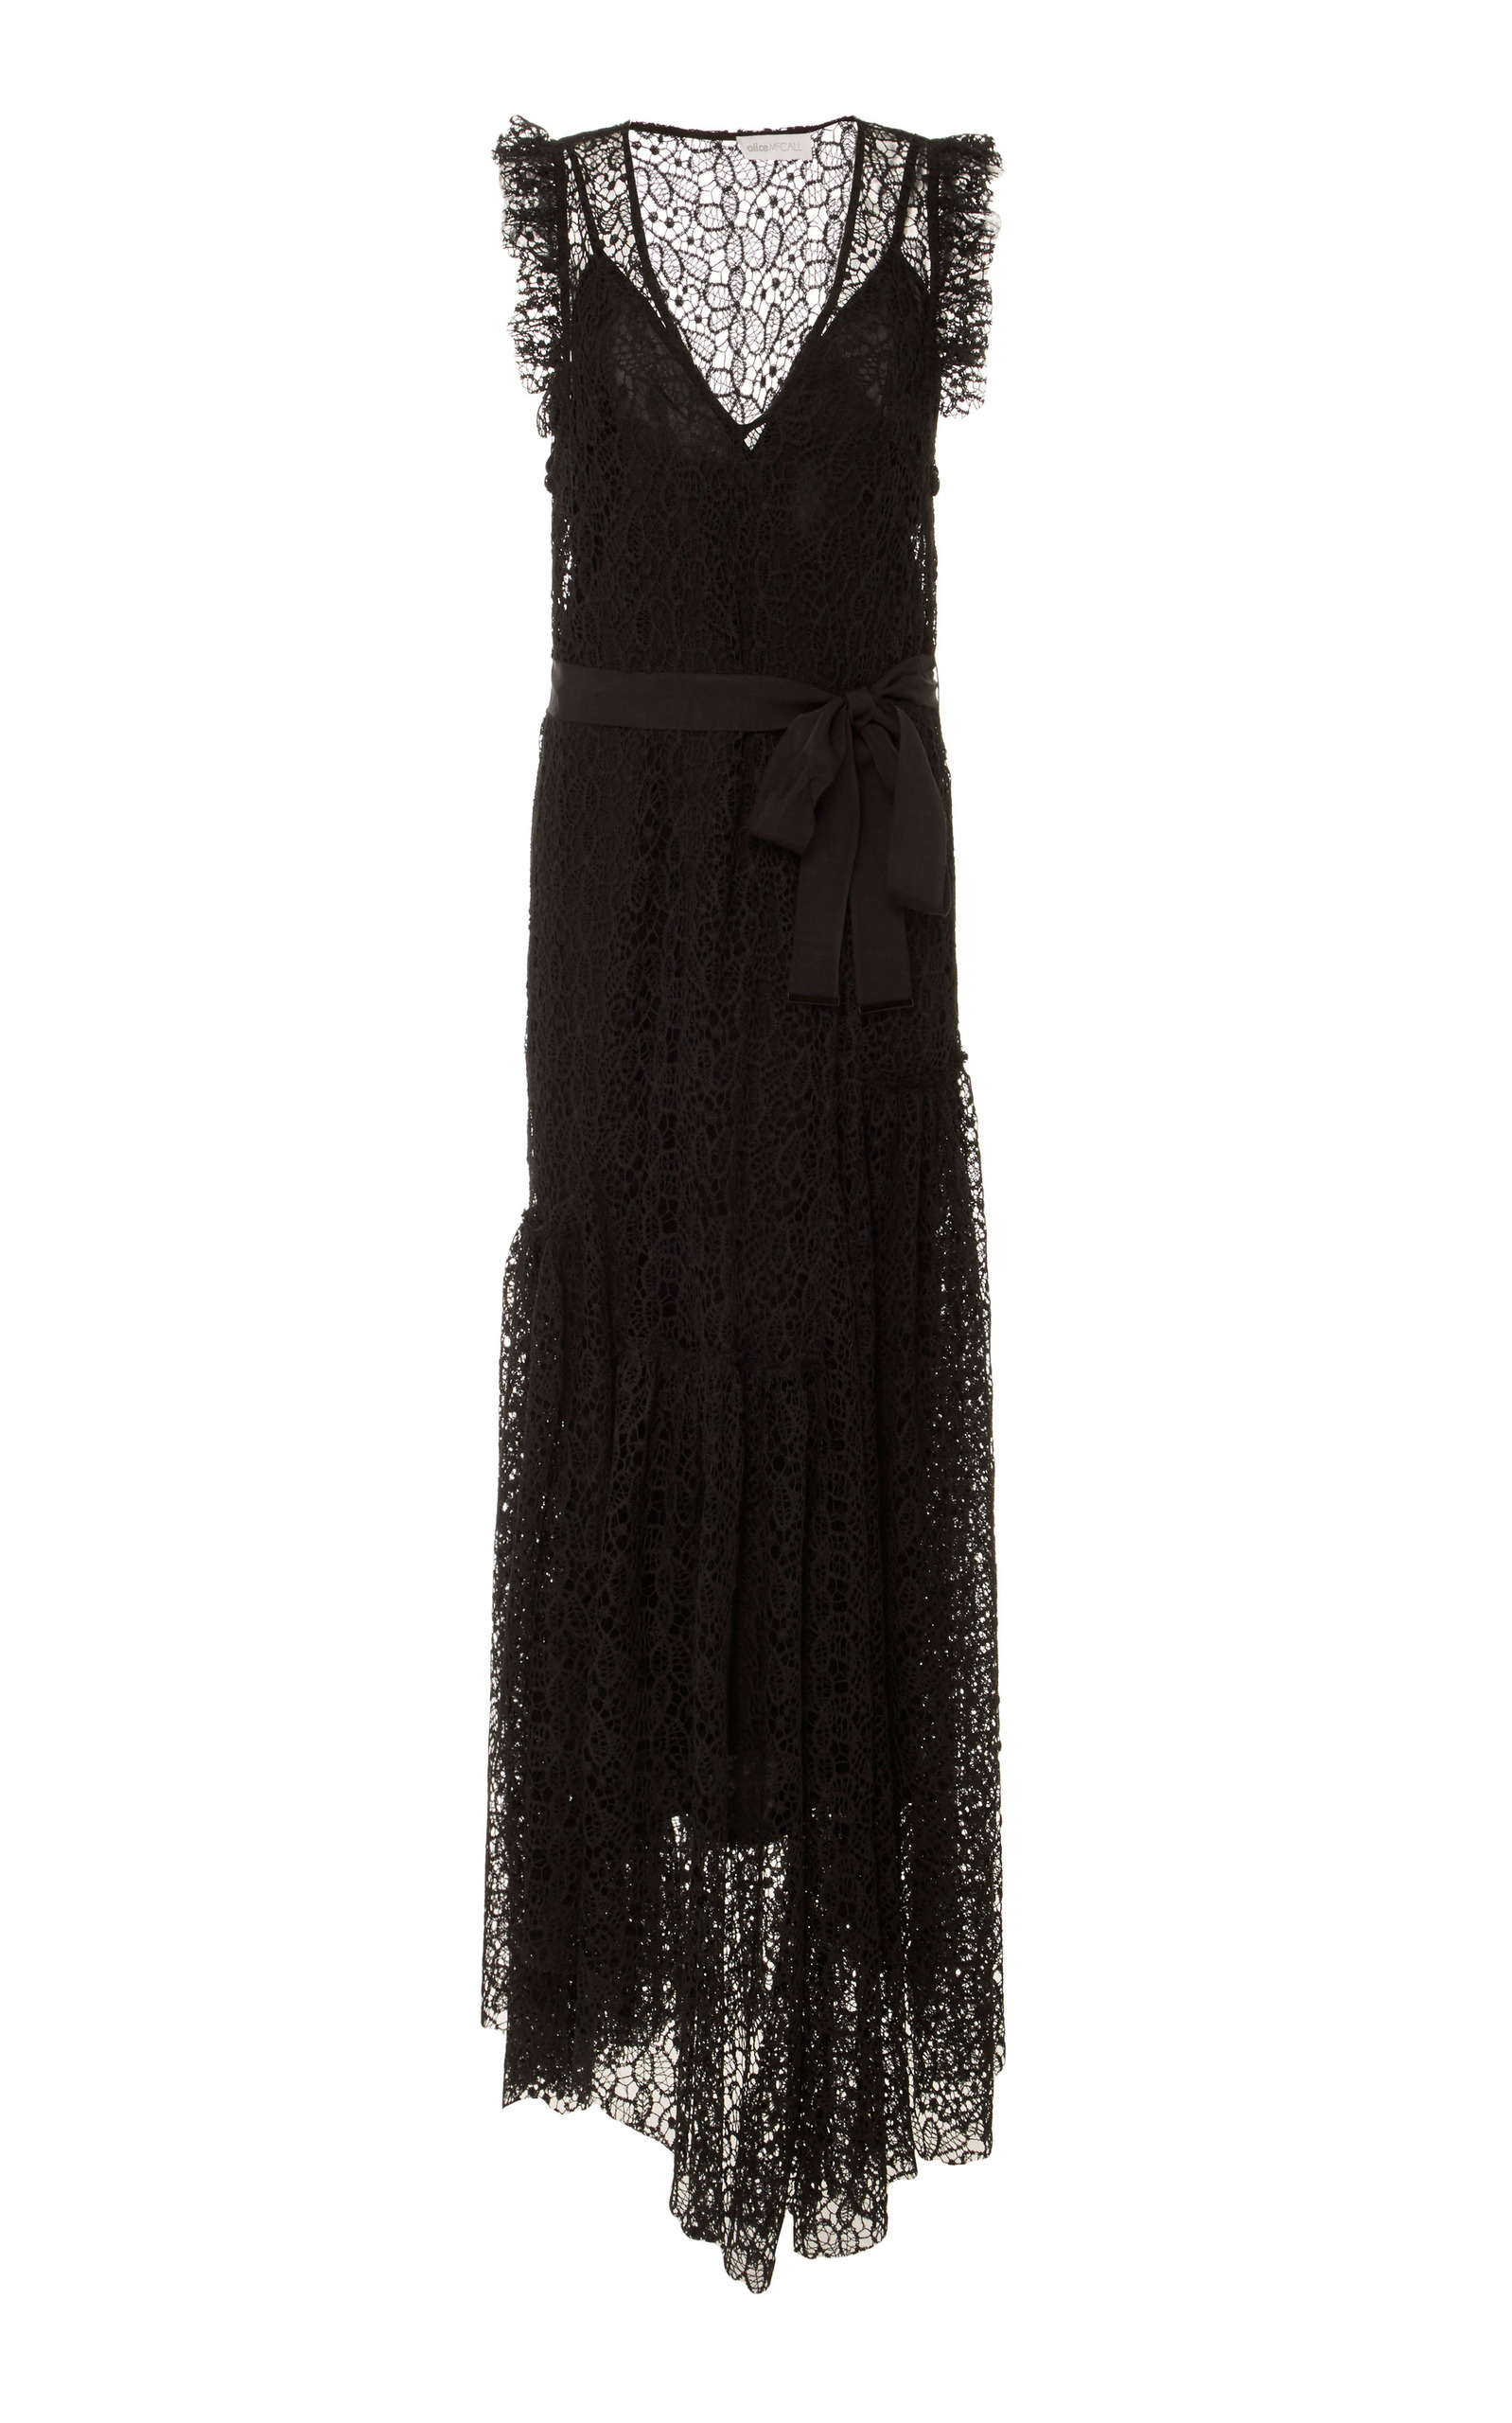 Reflection gown - Black Alice McCall 0NjHjSHvat